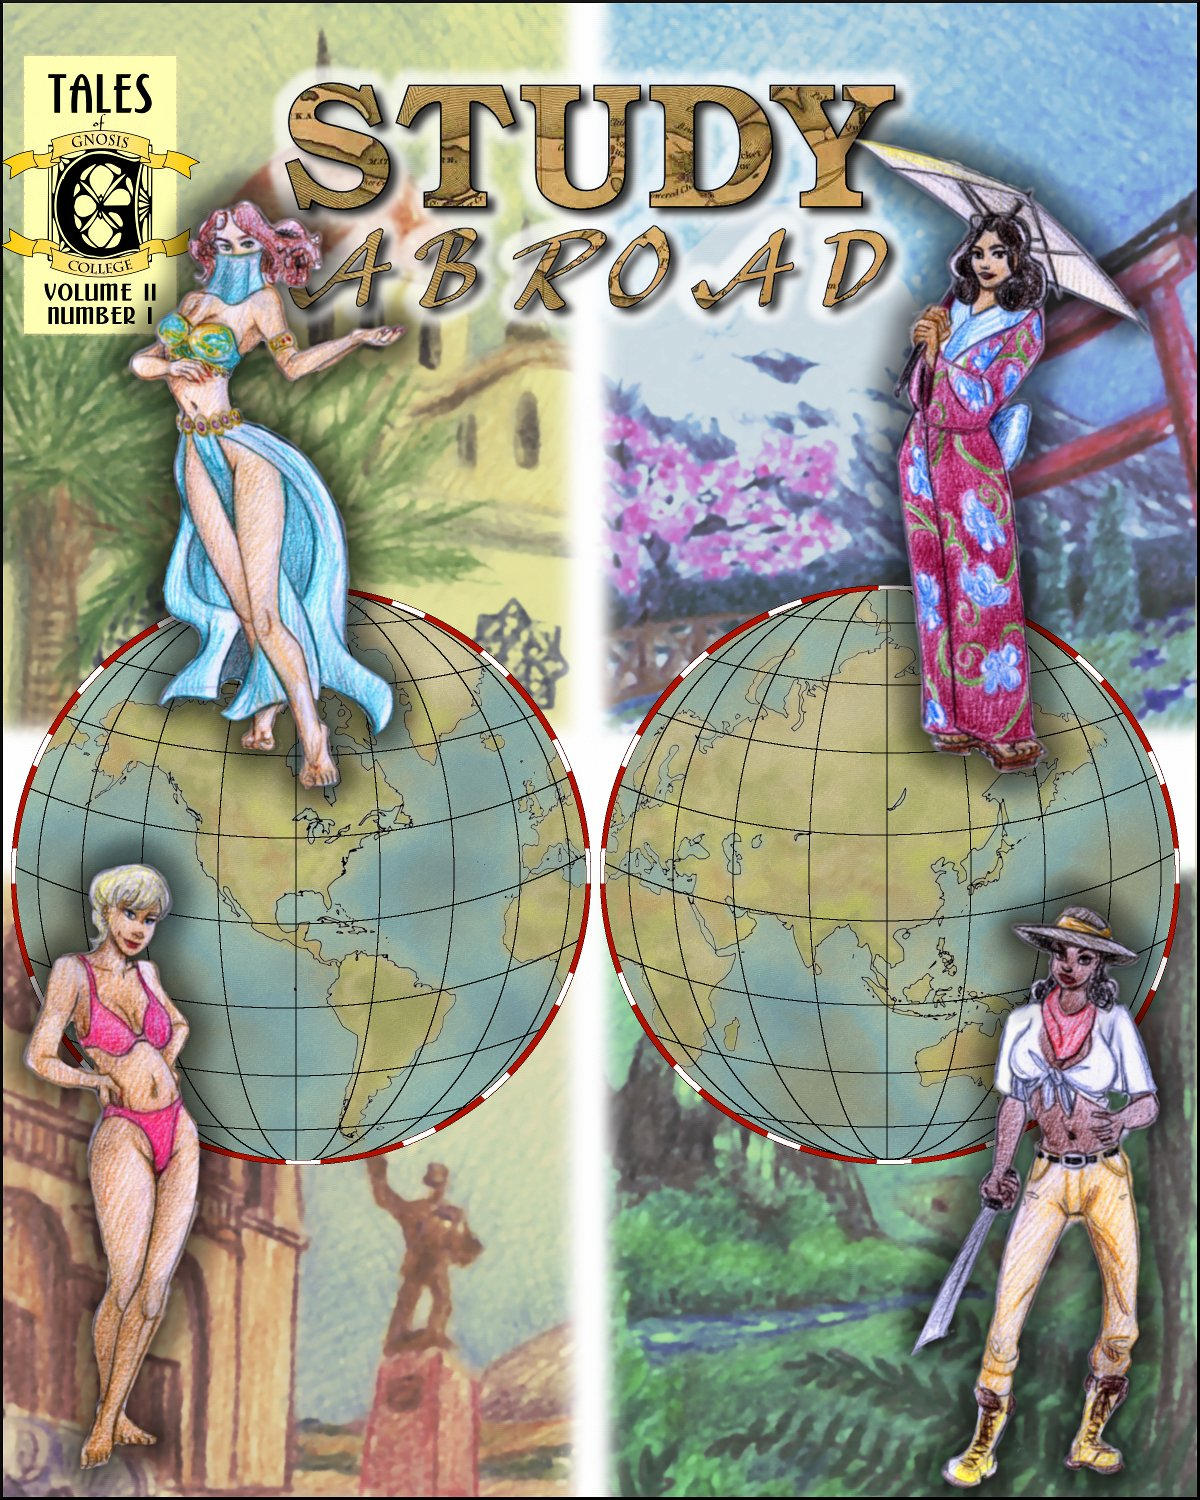 Four sexy coeds in the cover of the first issue of Study Abroad